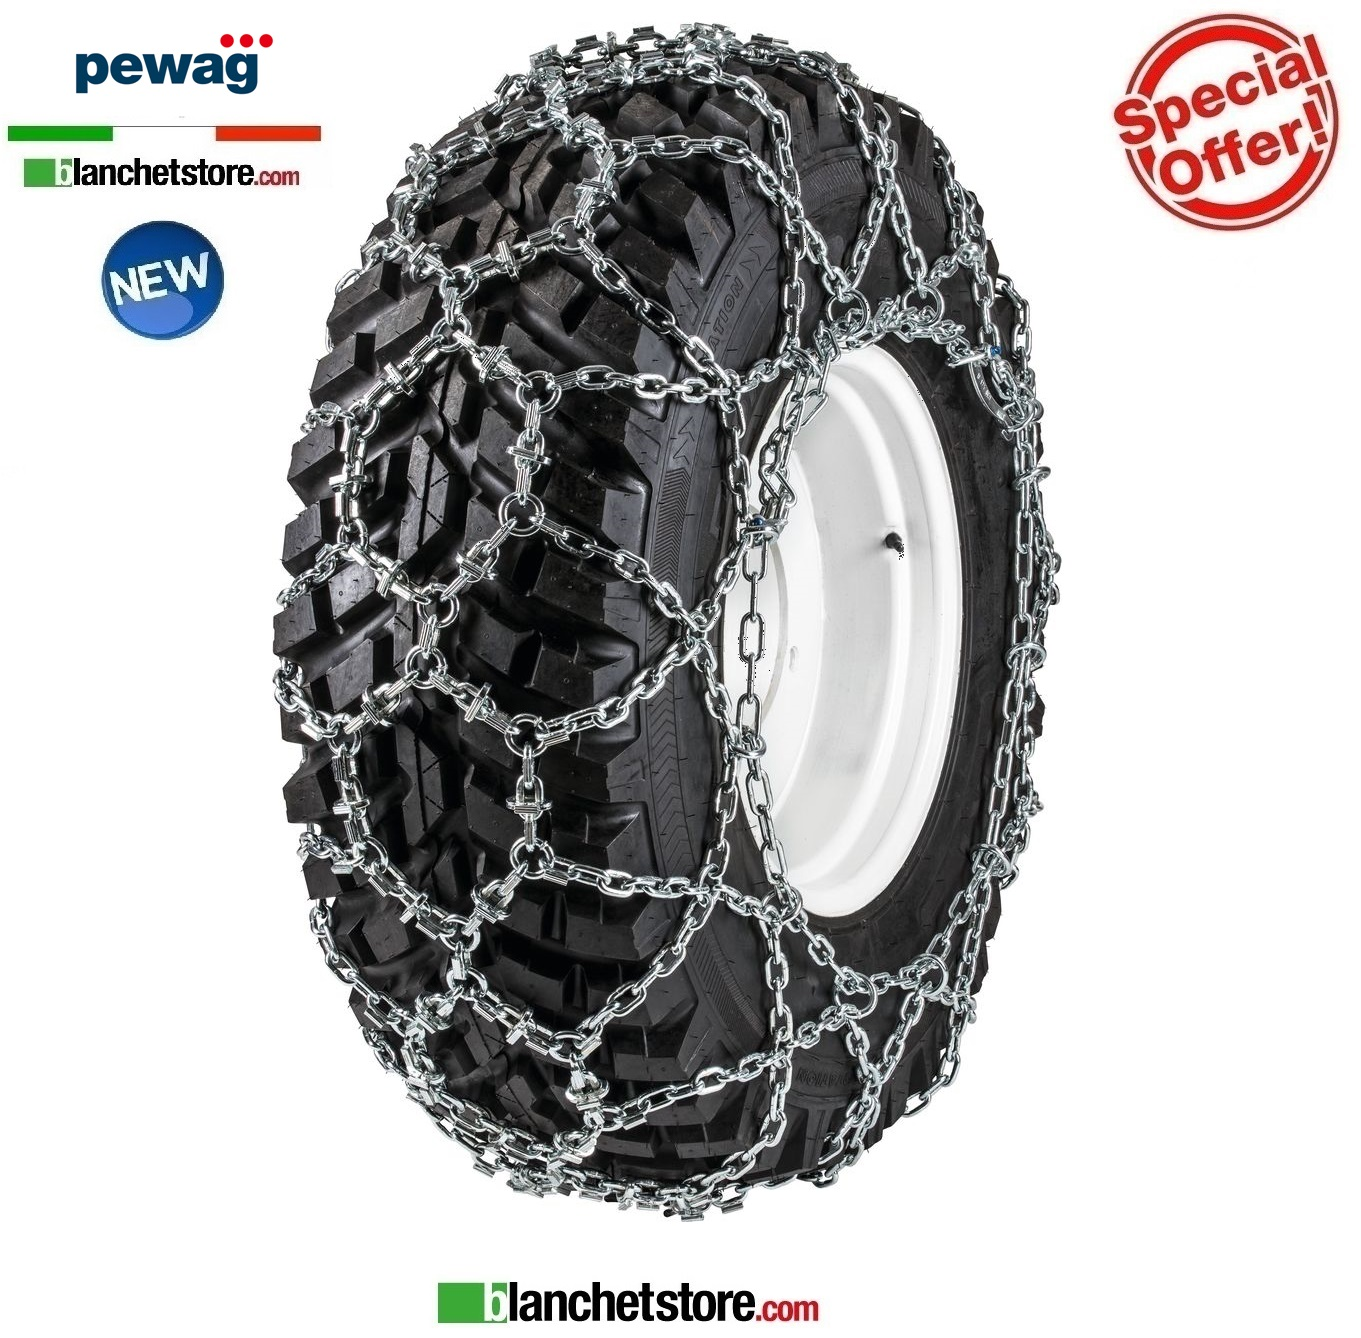 Chaines a neige PEWAG UNIVERSAL ED U 3934 ED pour tracteurs